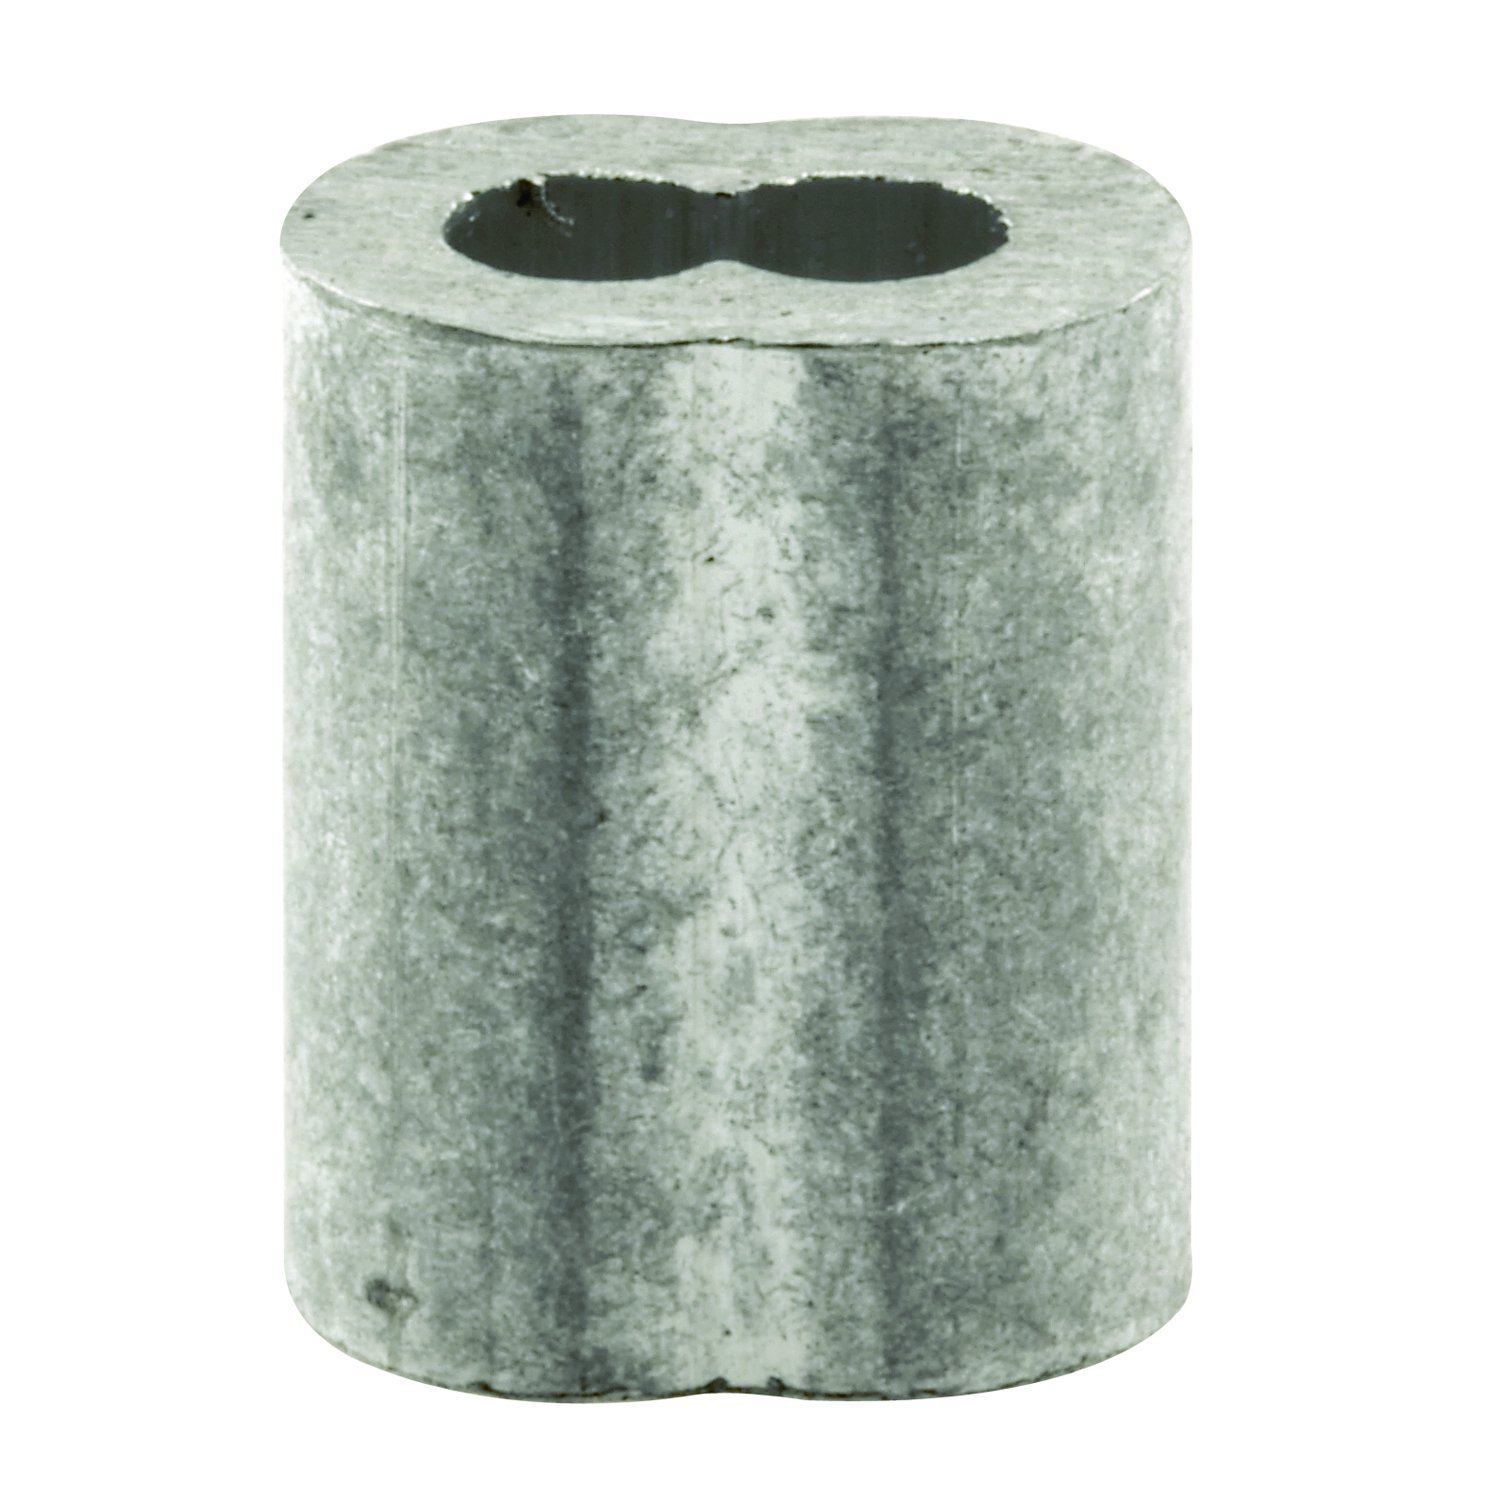 Prime Line Products GD 12174 Cable Ferrules 1 8 Extruded Aluminum Pack of 100